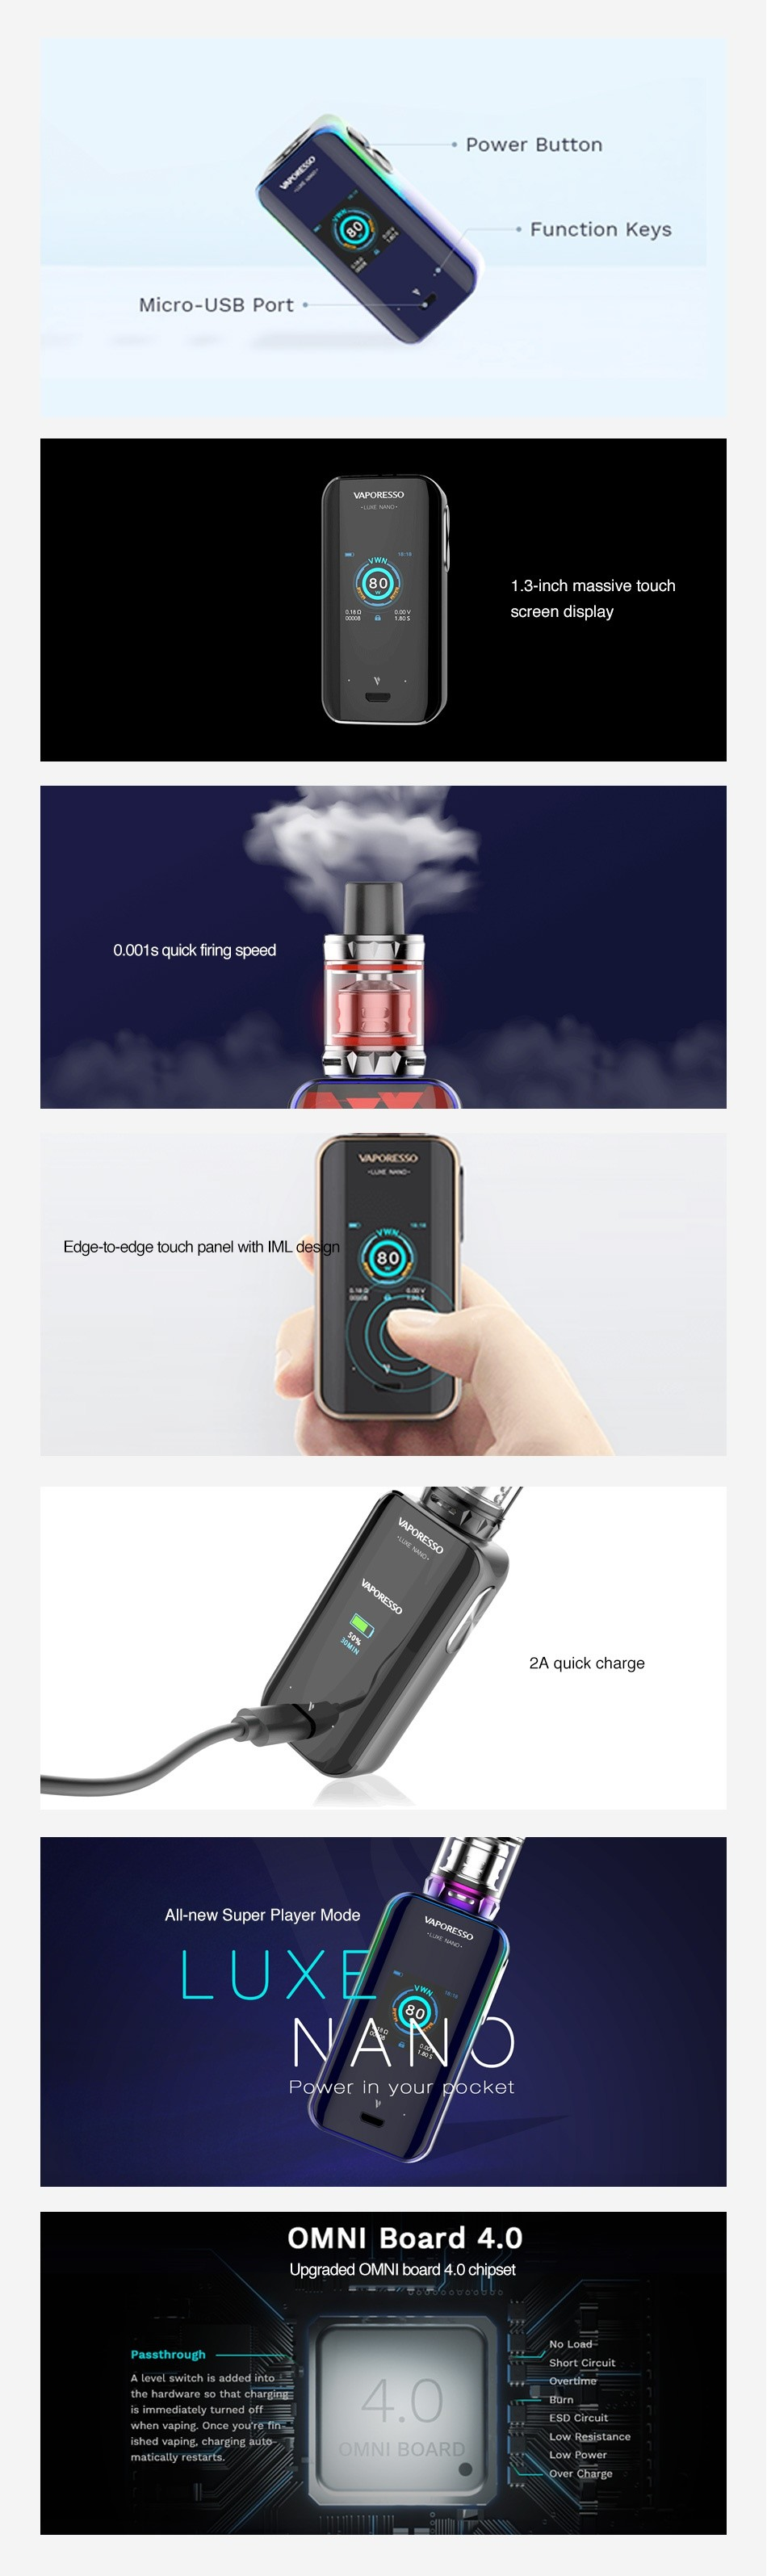 Vaporesso Luxe Nano 80W Touch Screen TC MOD 2500mAh Power Button Function Keys icro USB Port 3 inch massive touch 0 001s quick firing speed Edge bmrecge touch panel with IML All new Super Player Made L   NA oMNI Board 4 0 Upgraded OMNI board 4 0 chipset had vaping  charging